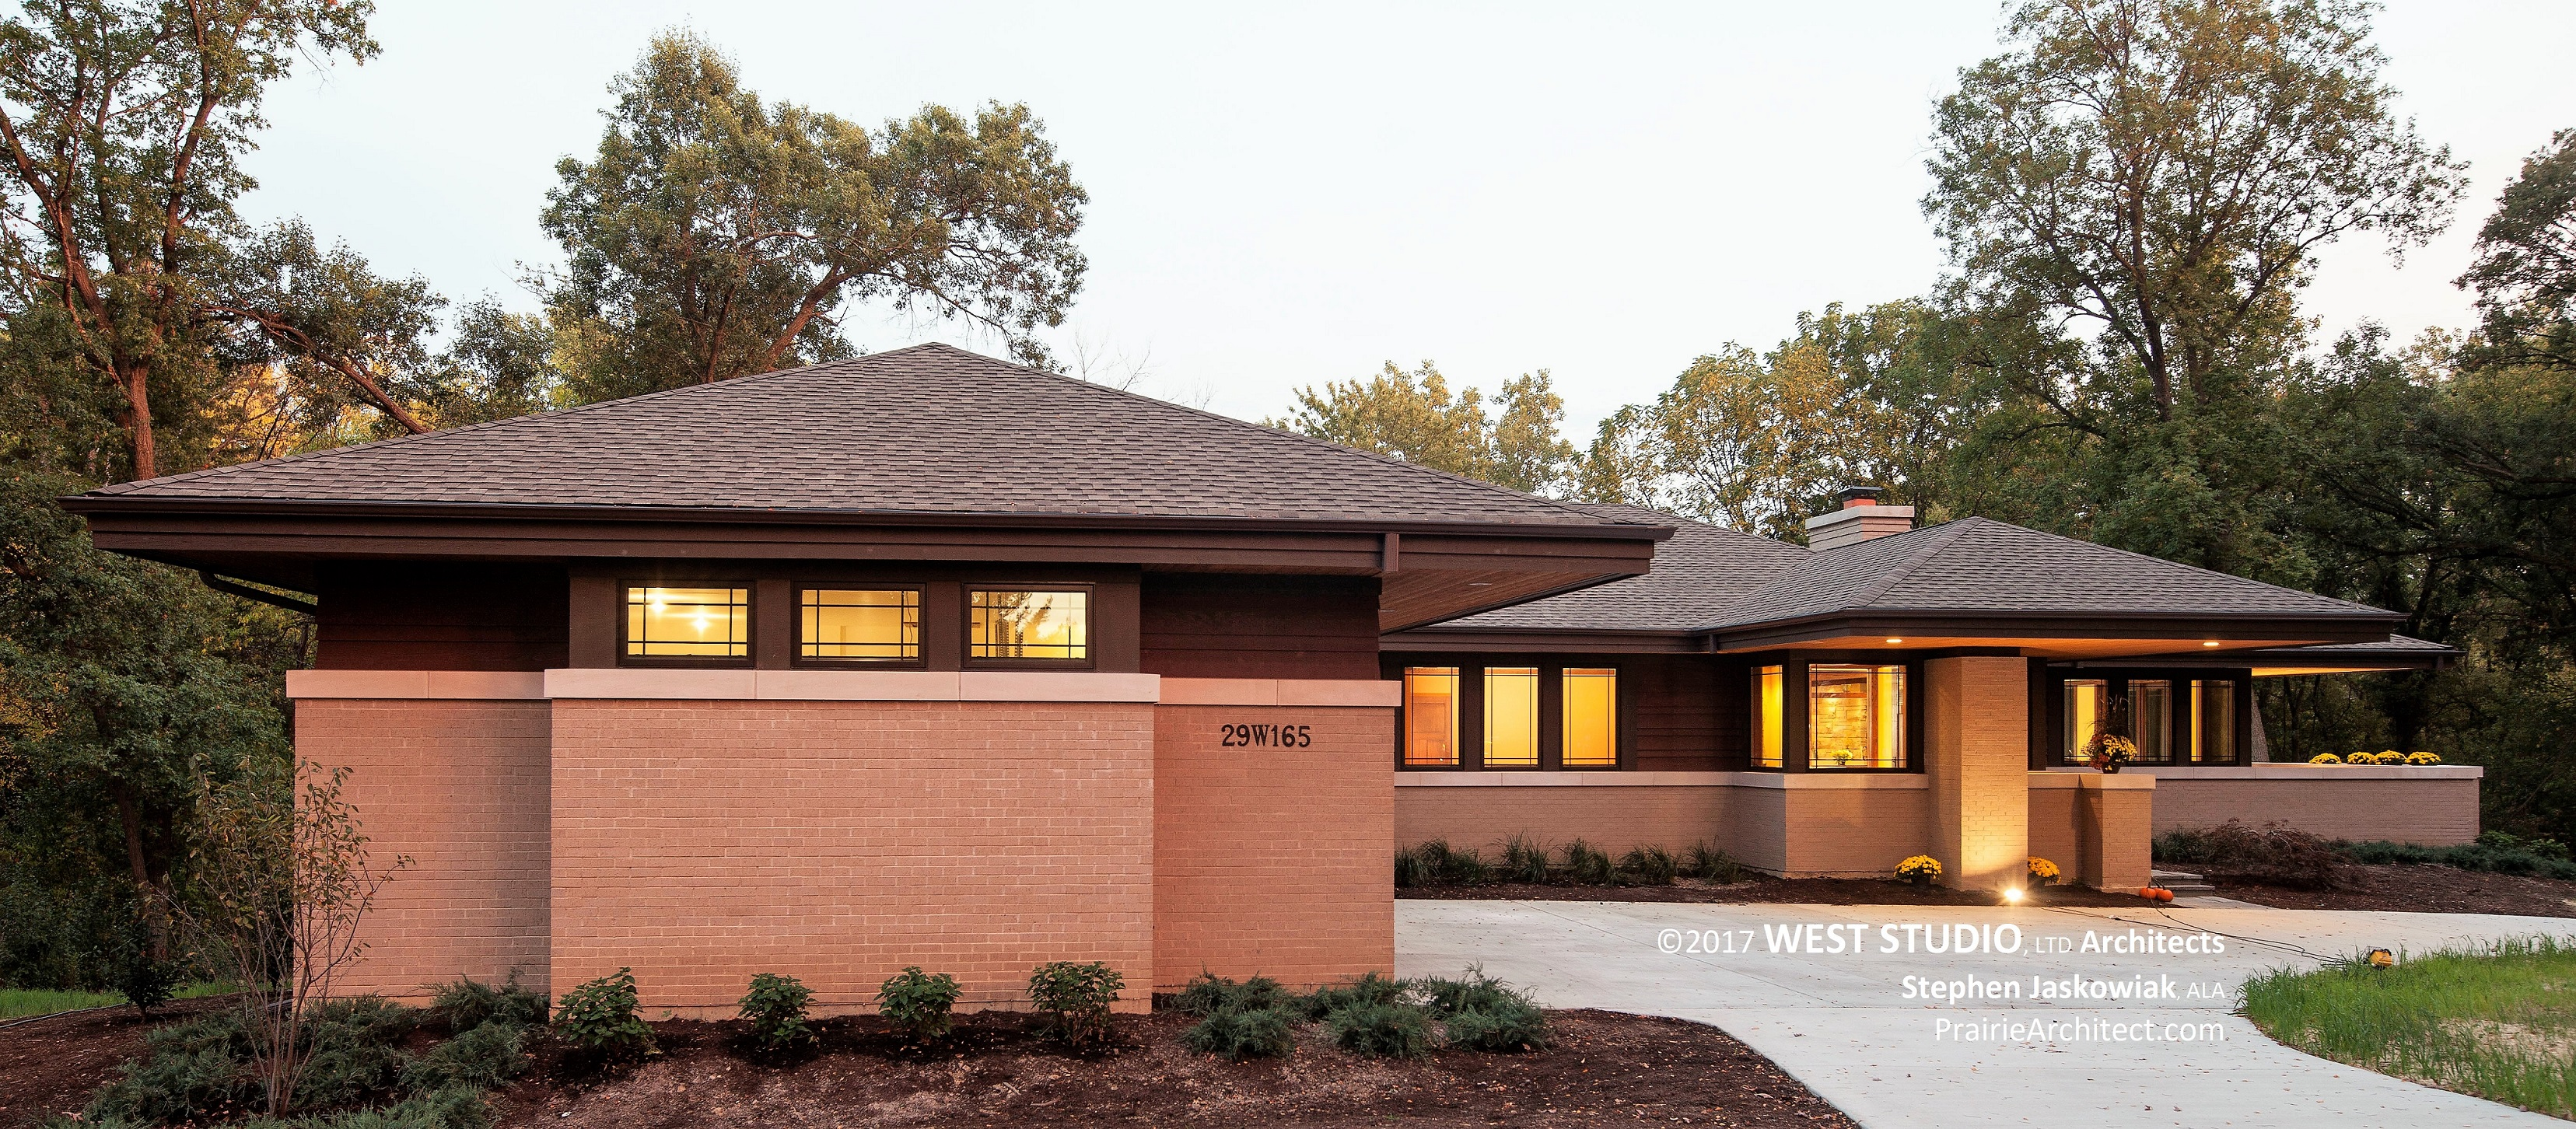 Prairie inspired architecture by west studio architects for New construction ranch style homes in illinois